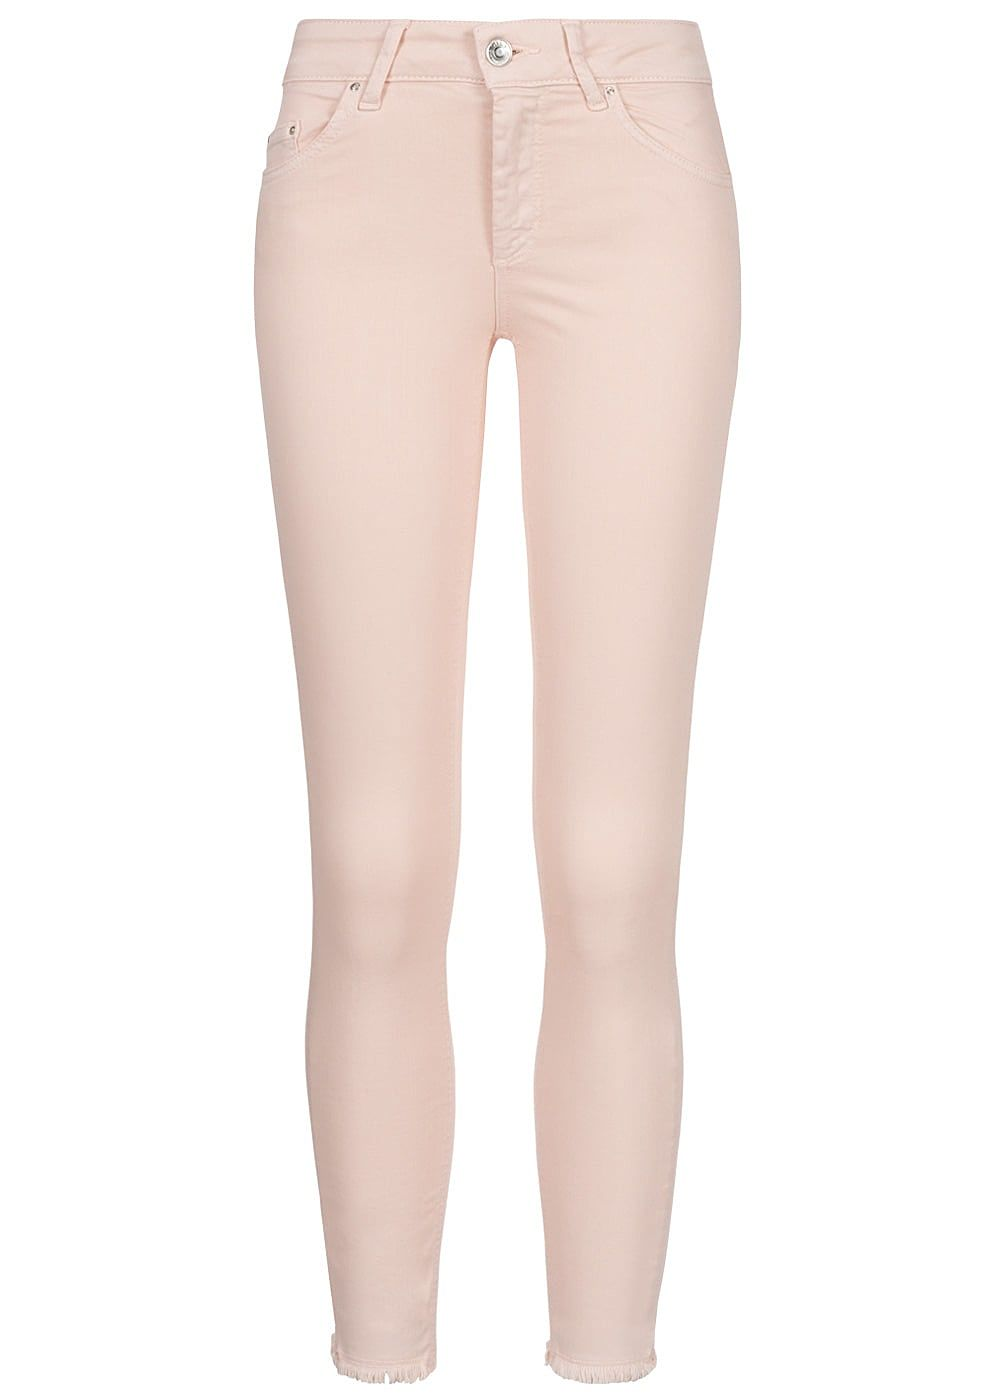 ONLY Damen Ankle Skinny Jeans 5-Pockets NOOS peach whip rosa - Art.-Nr.: 19020710